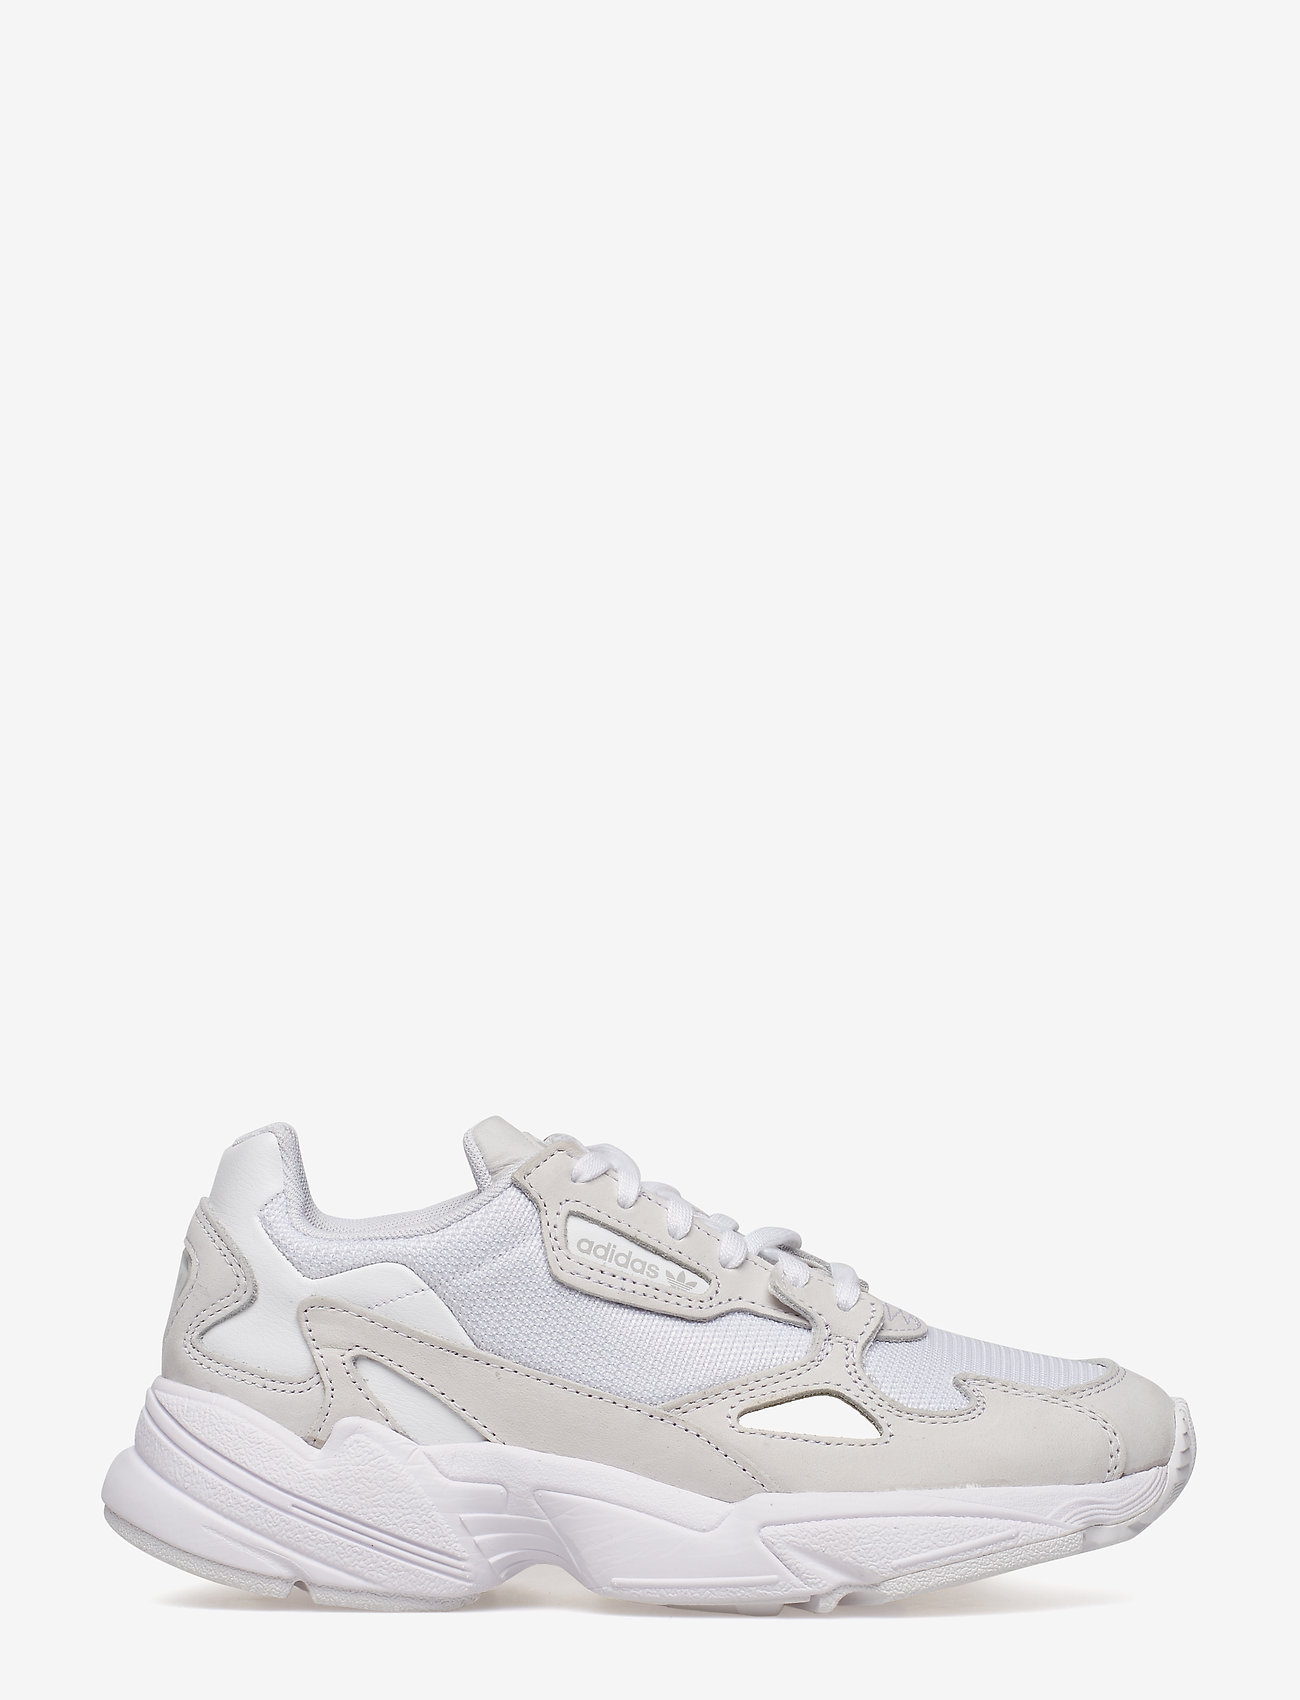 adidas Originals - FALCON W - chunky sneakers - ftwwht/ftwwht/crywht - 1